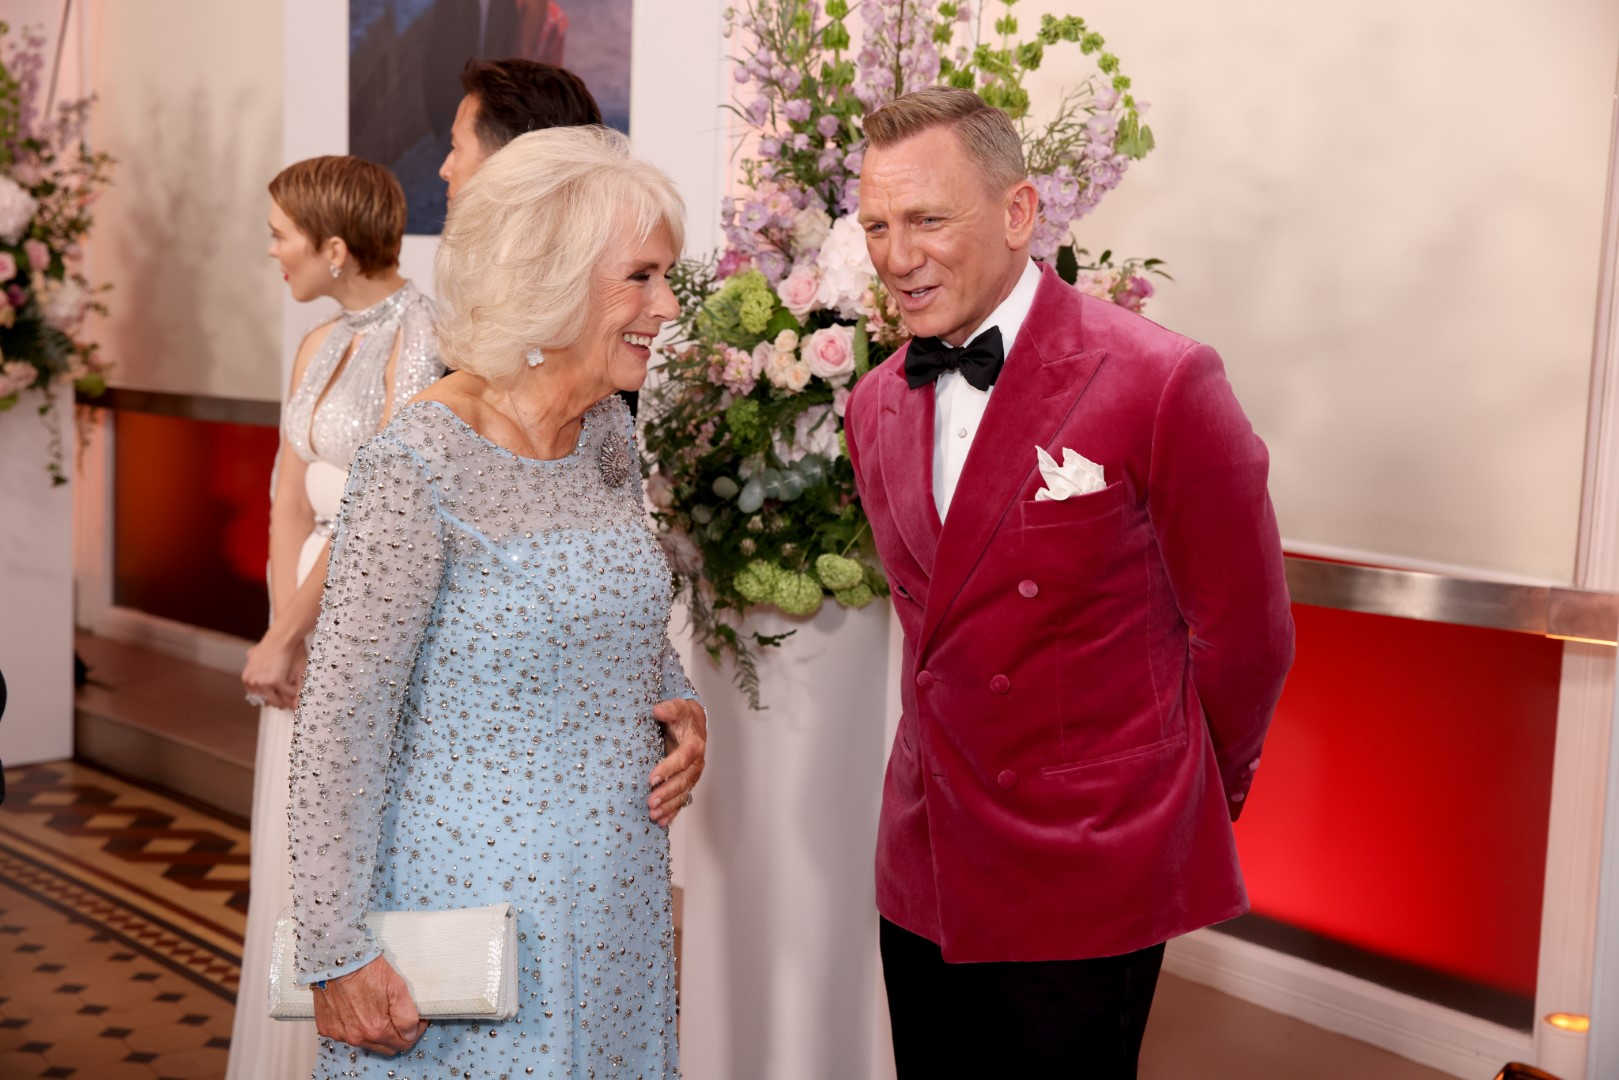 """LONDON, ENGLAND - SEPTEMBER 28: Camilla, Duchess of Cornwall meets some of the cast including Daniel Craig at the World Premiere of """"NO TIME TO DIE"""" at the Royal Albert Hall on September 28, 2021 in London, England. (Photo by Tim P. Whitby/Getty Images for EON Productions, Metro-Goldwyn-Mayer Studios, and Universal Pictures )"""